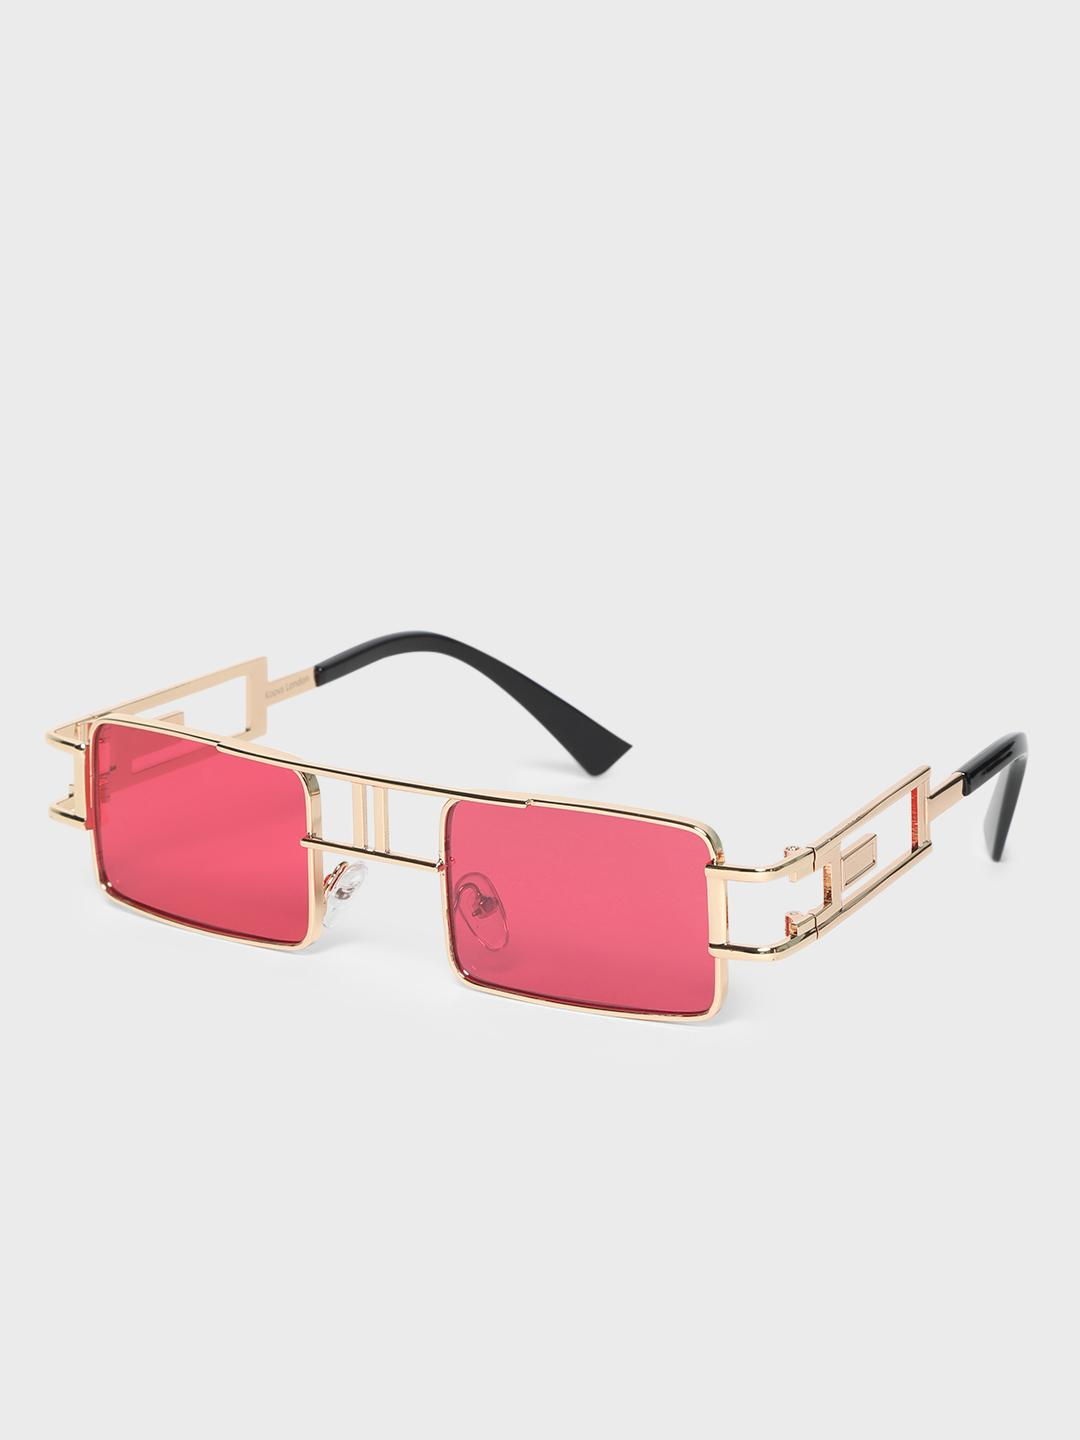 KOOVS Red Metal Frame Square Sunglasses 1